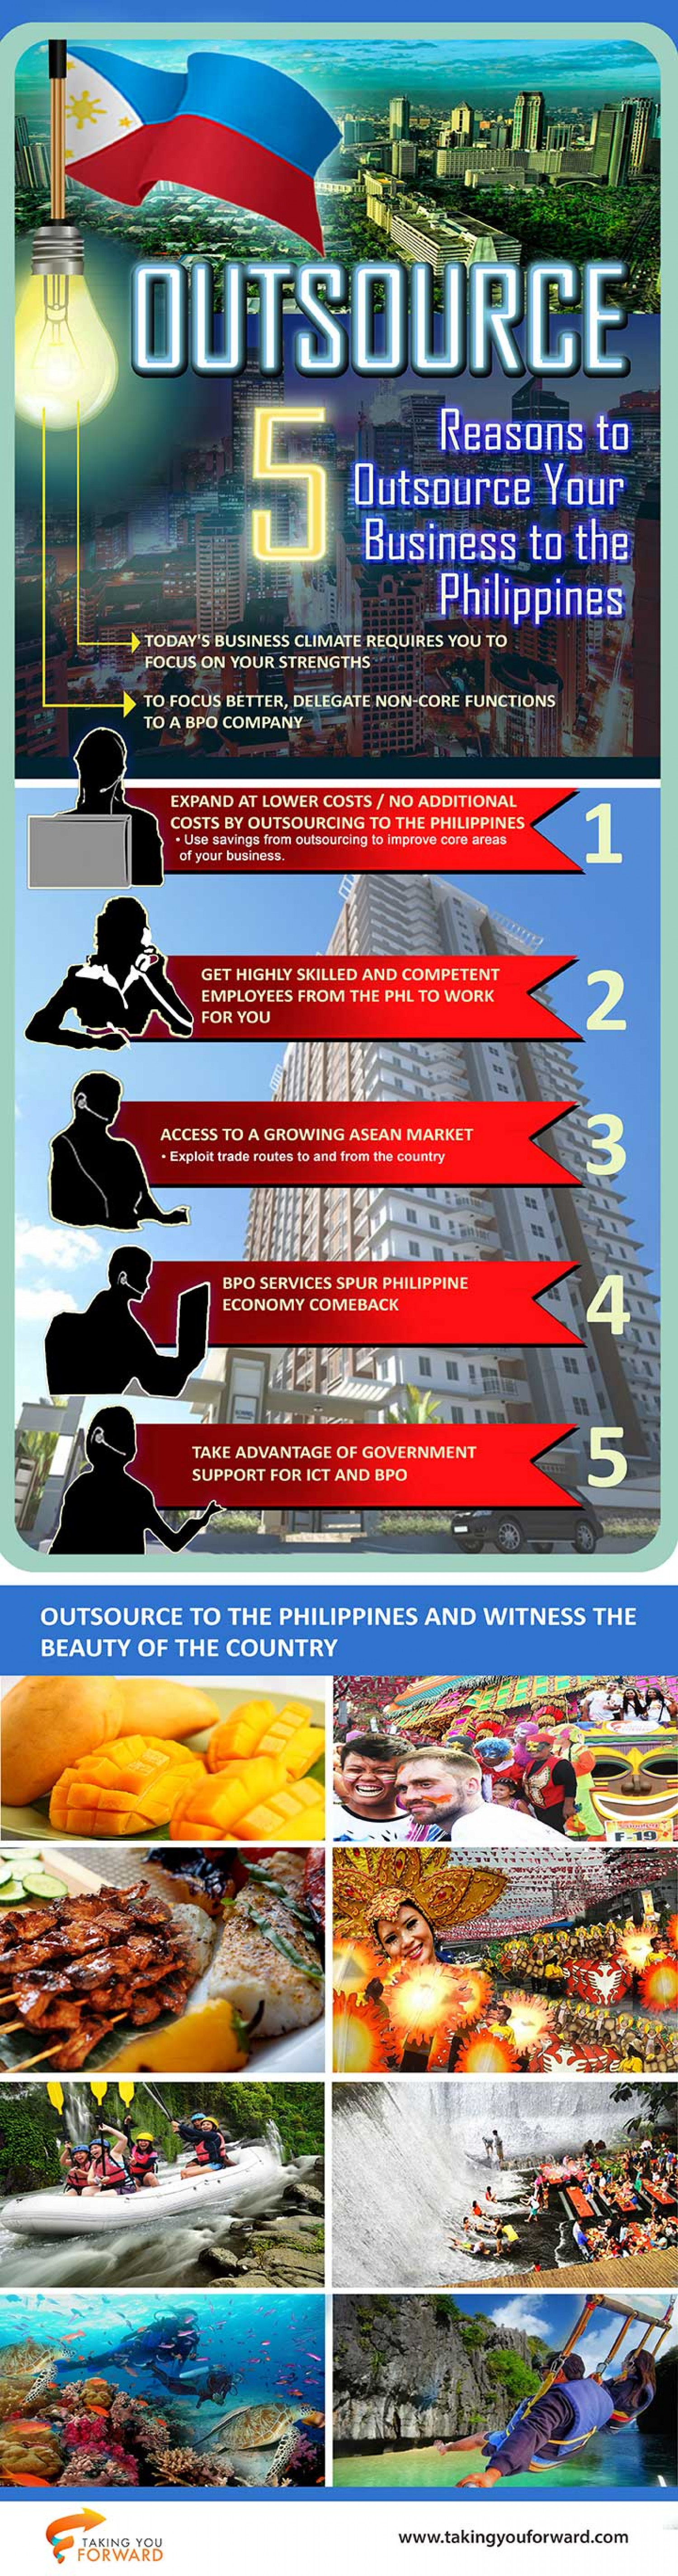 Five Reasons to Outsource Your Business to the Philippines Infographic